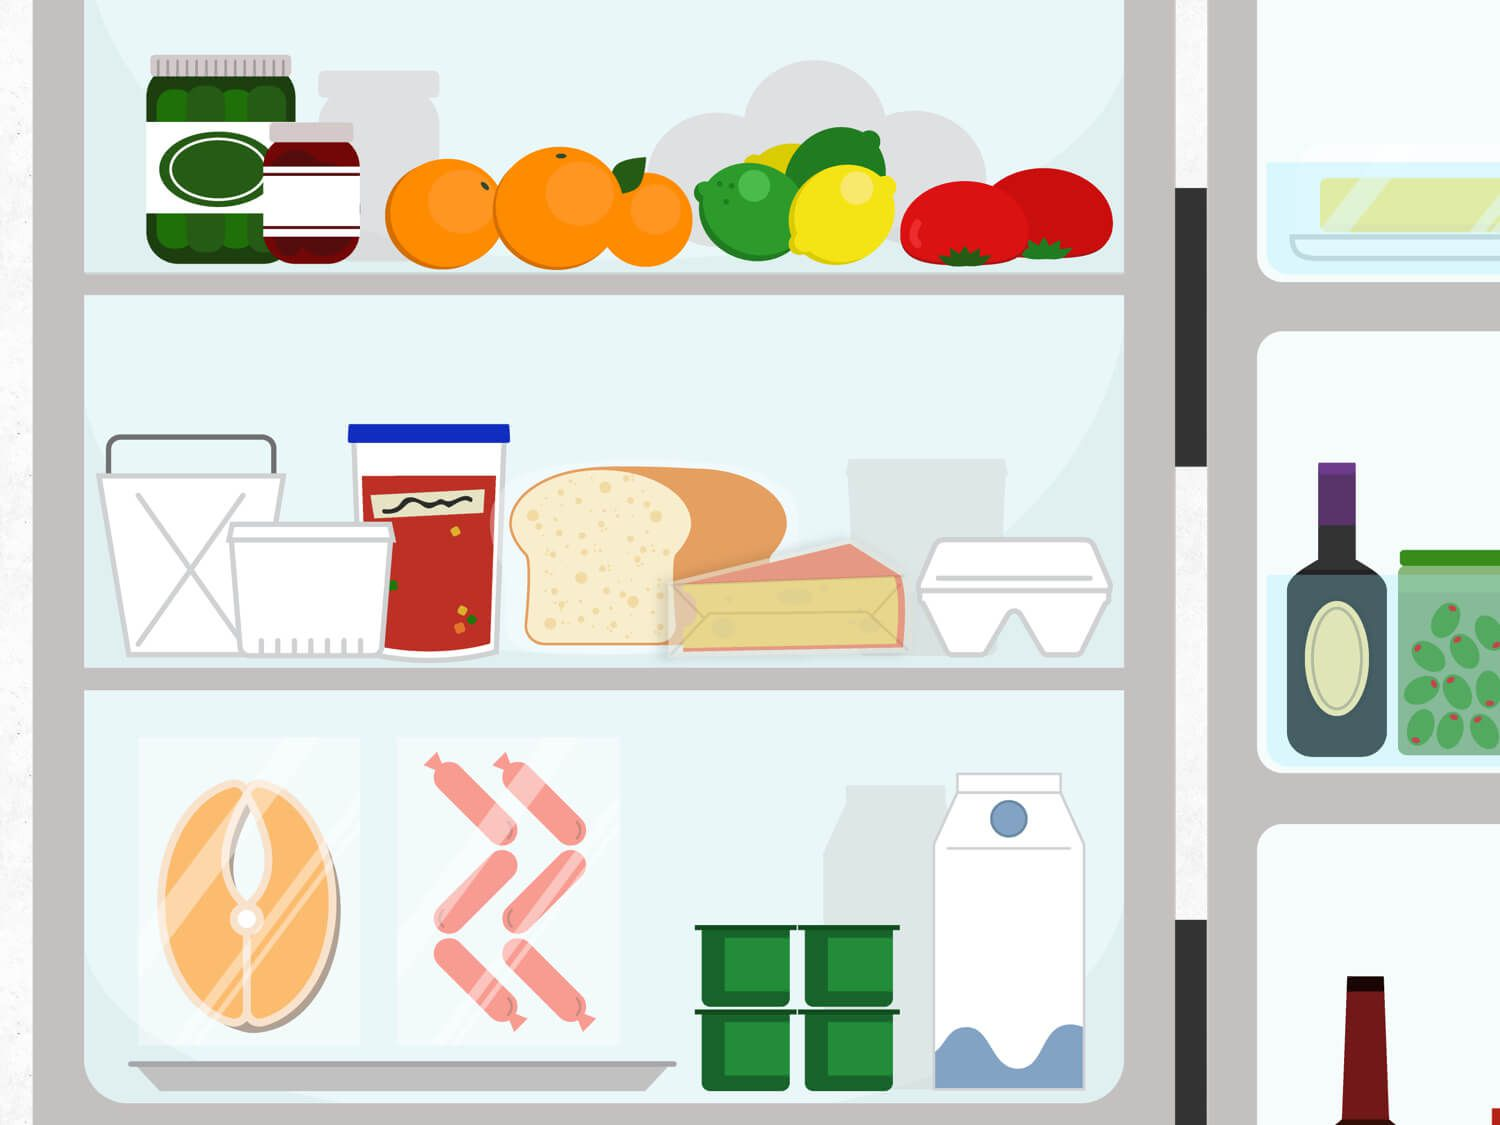 Graphic illustration of the main, central shelves of a refrigerator with various items